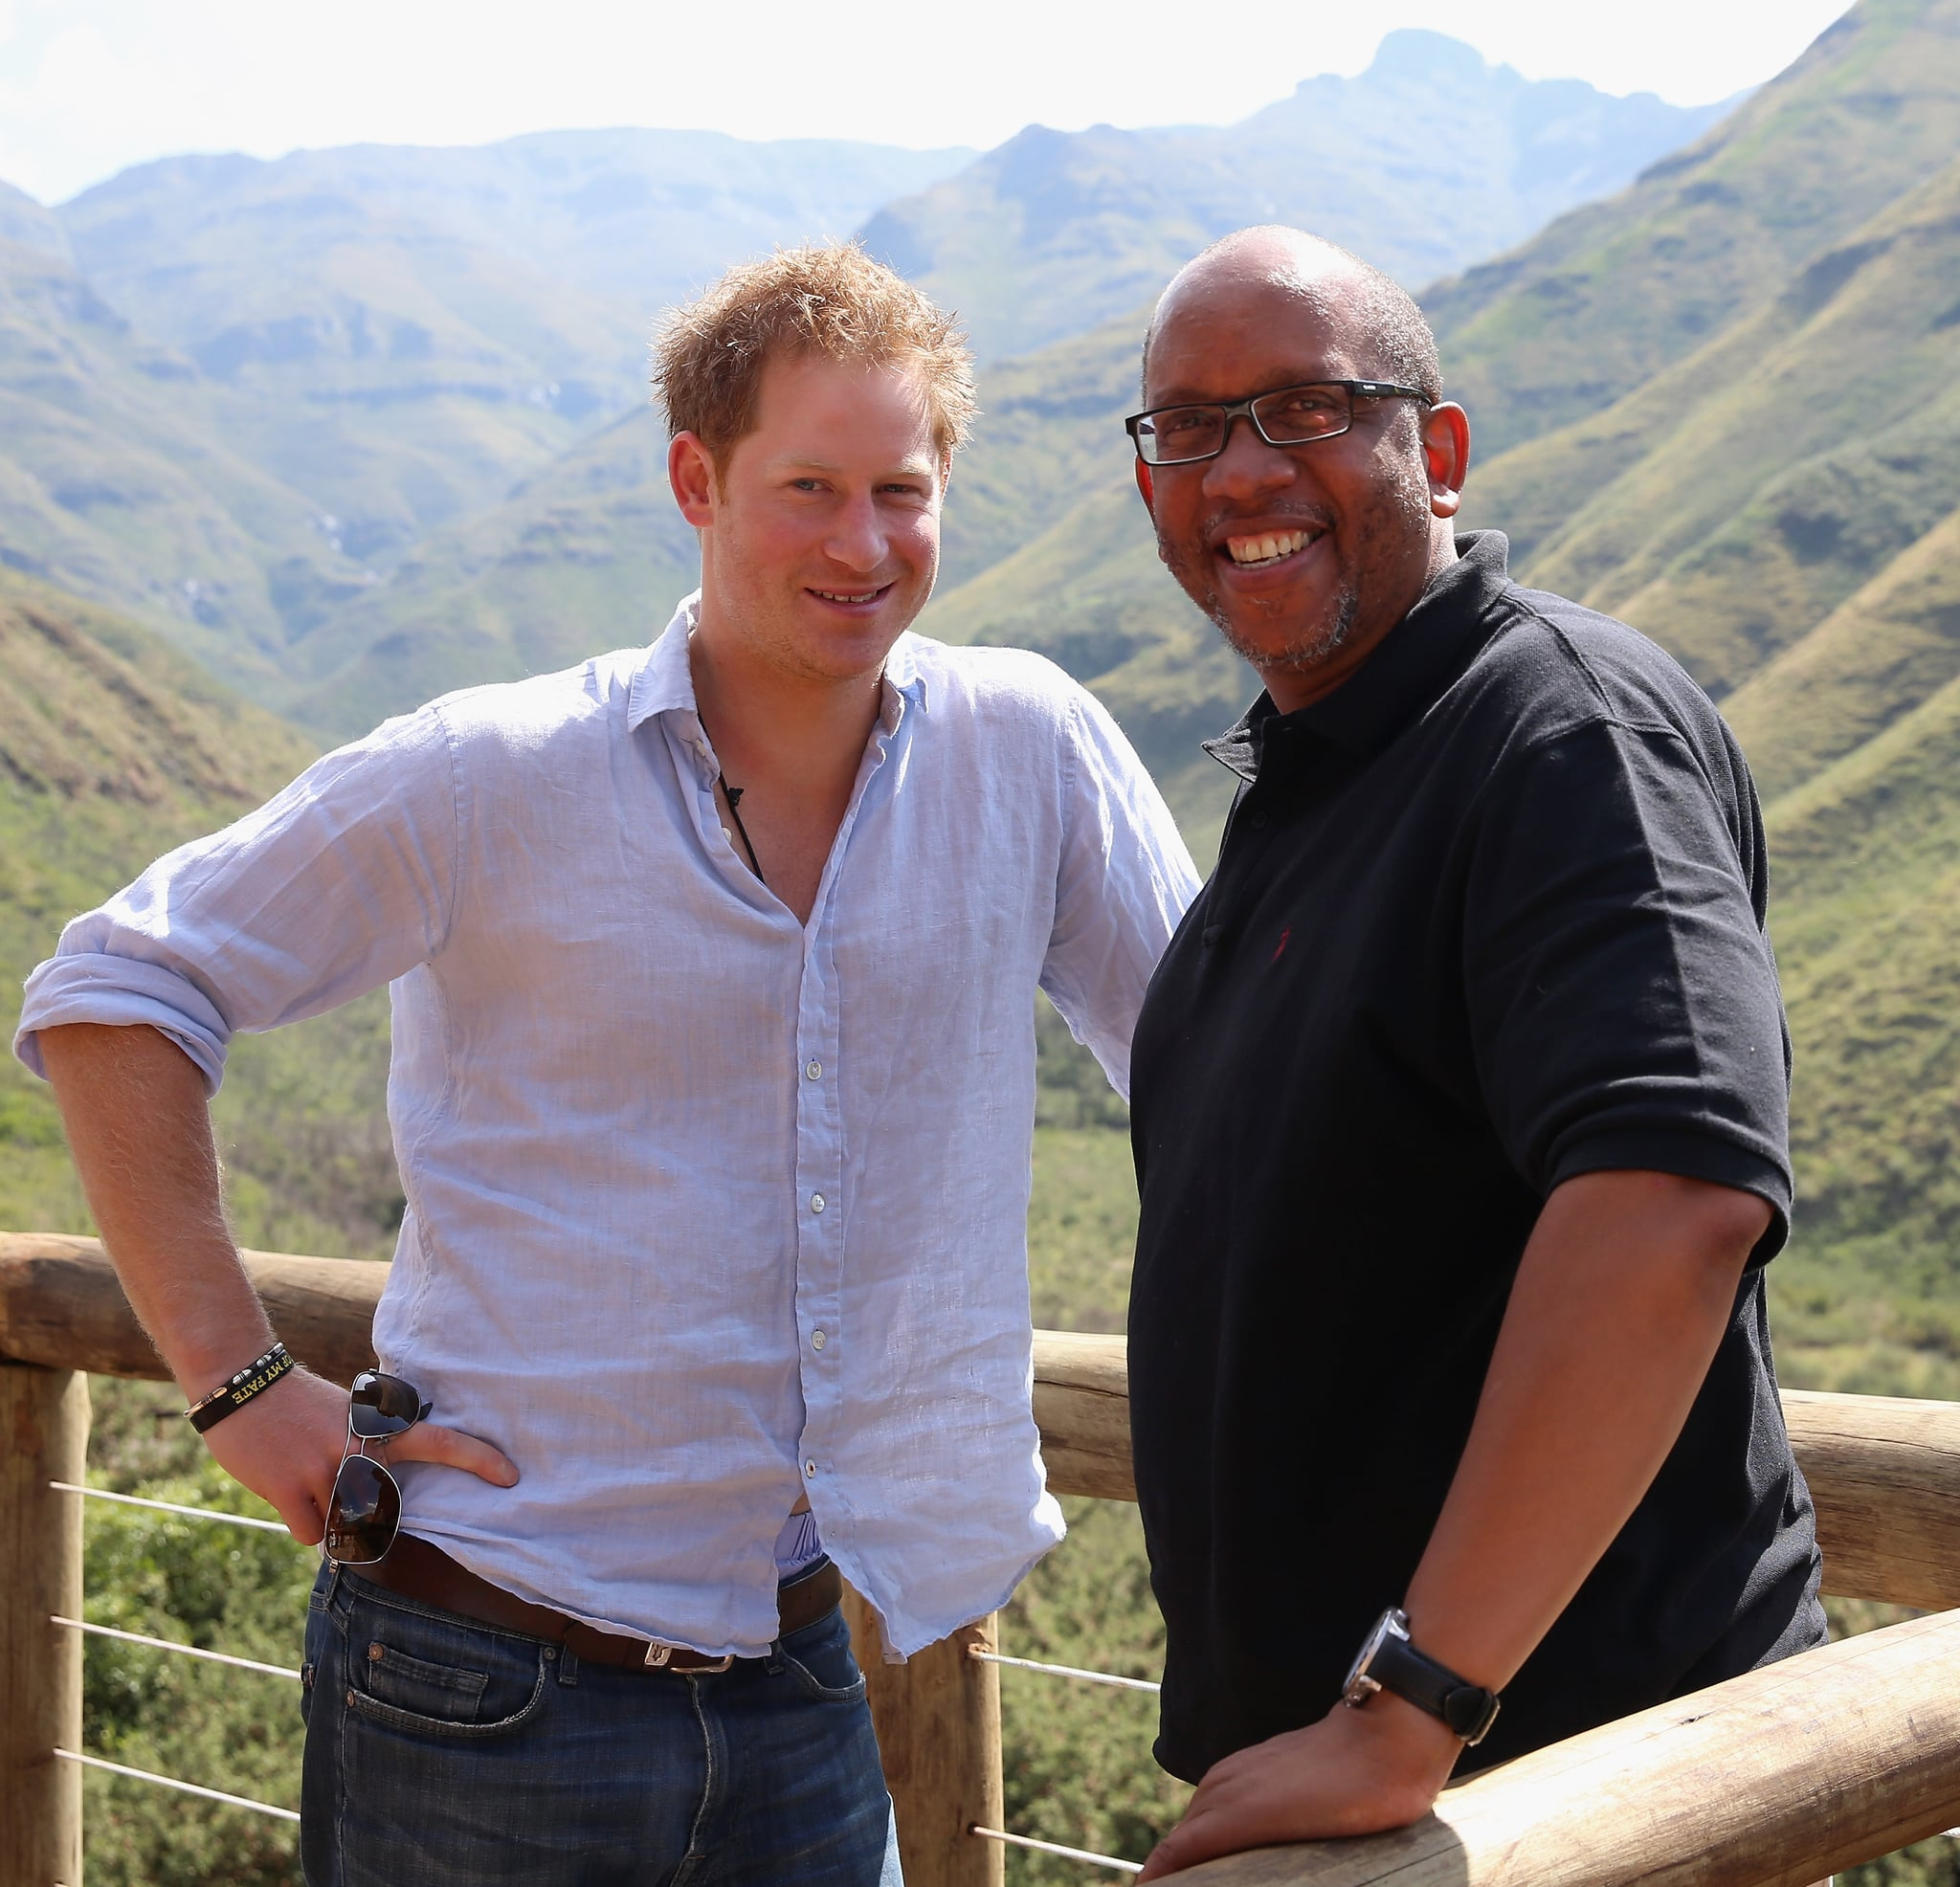 MOKHOTLONG, LESOTHO - DECEMBER 08:  Prince Harry with Prince Seeiso of Lesotho in the Maluti Mountains on December 8, 2014 in Mokhotlong, Lesotho. Prince Harry was visiting Lesotho to see the work of his charity Sentebale. Sentebale provides healthcare and education to vulnerable children in Lesotho, Southern Africa. The particular theme of his visit was to check on the progress of the Mamohato Childrens Centre which will provide vital support to children affected by HIV. Prince Harry founded Sentebale (which means Forget Me Not in Sesotho) with Prince Seeiso in 2006.  (Photo by Chris Jackson/Getty Images for Sentebale)